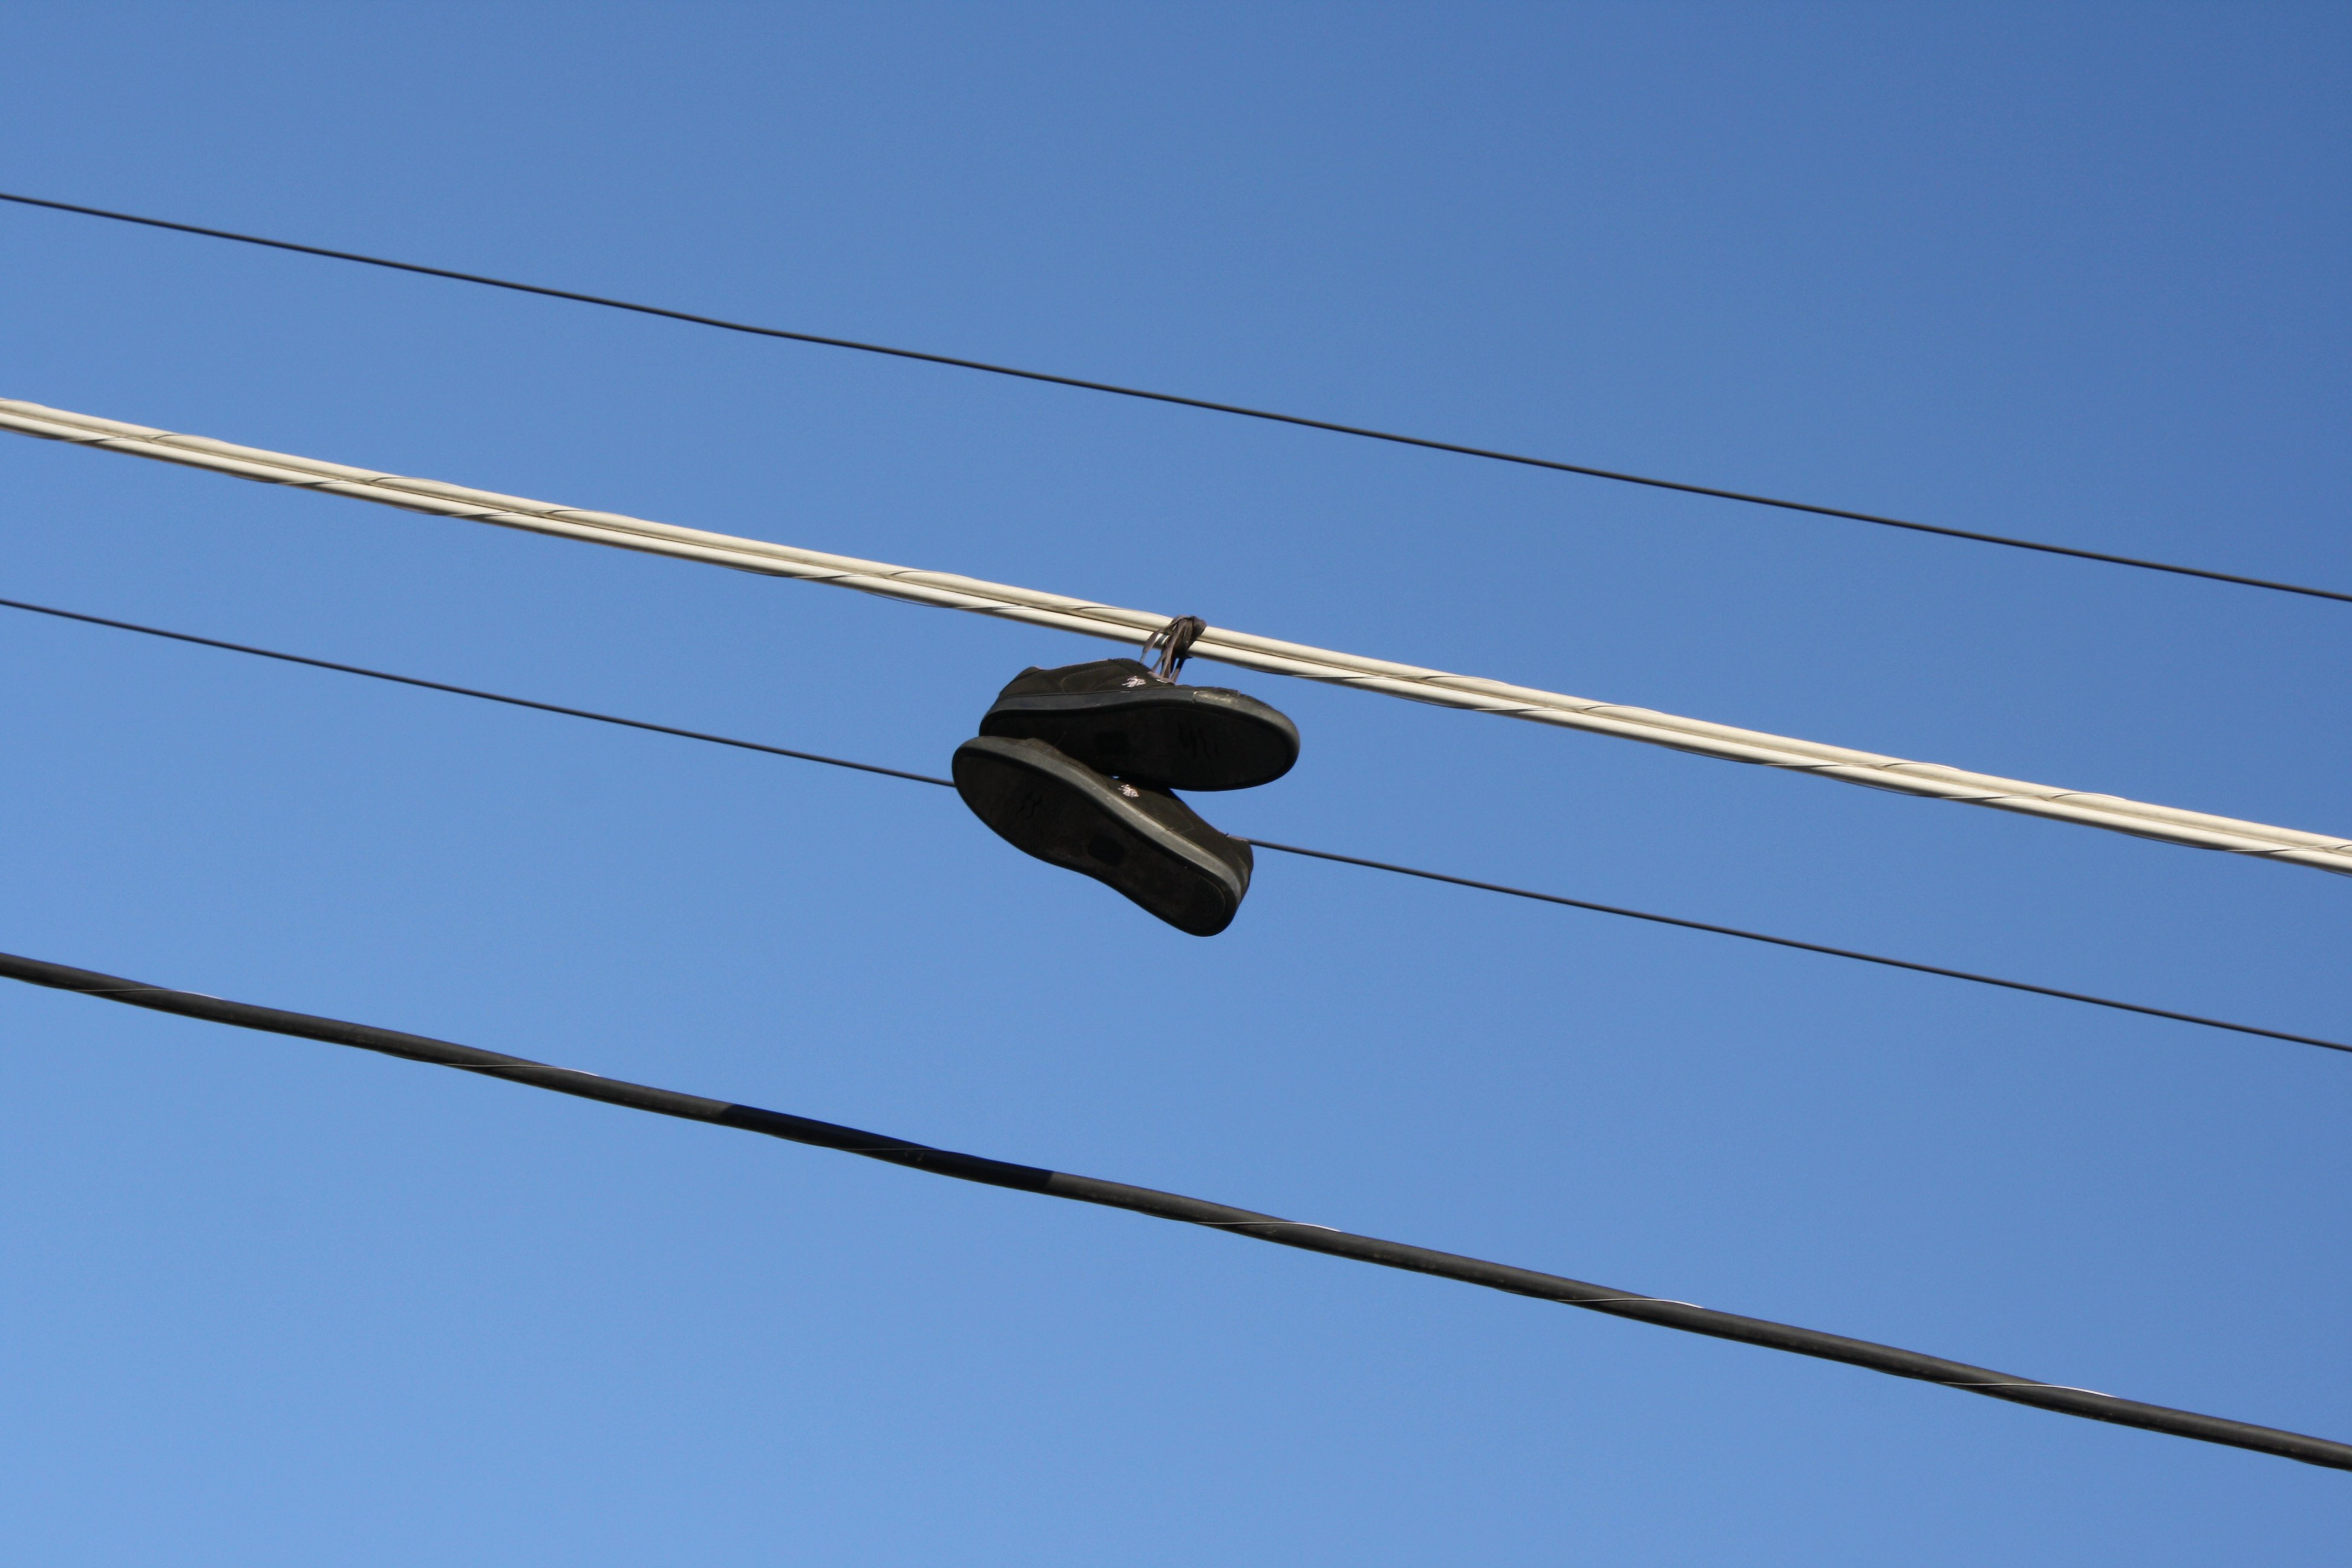 Tennis Shoes On Wires